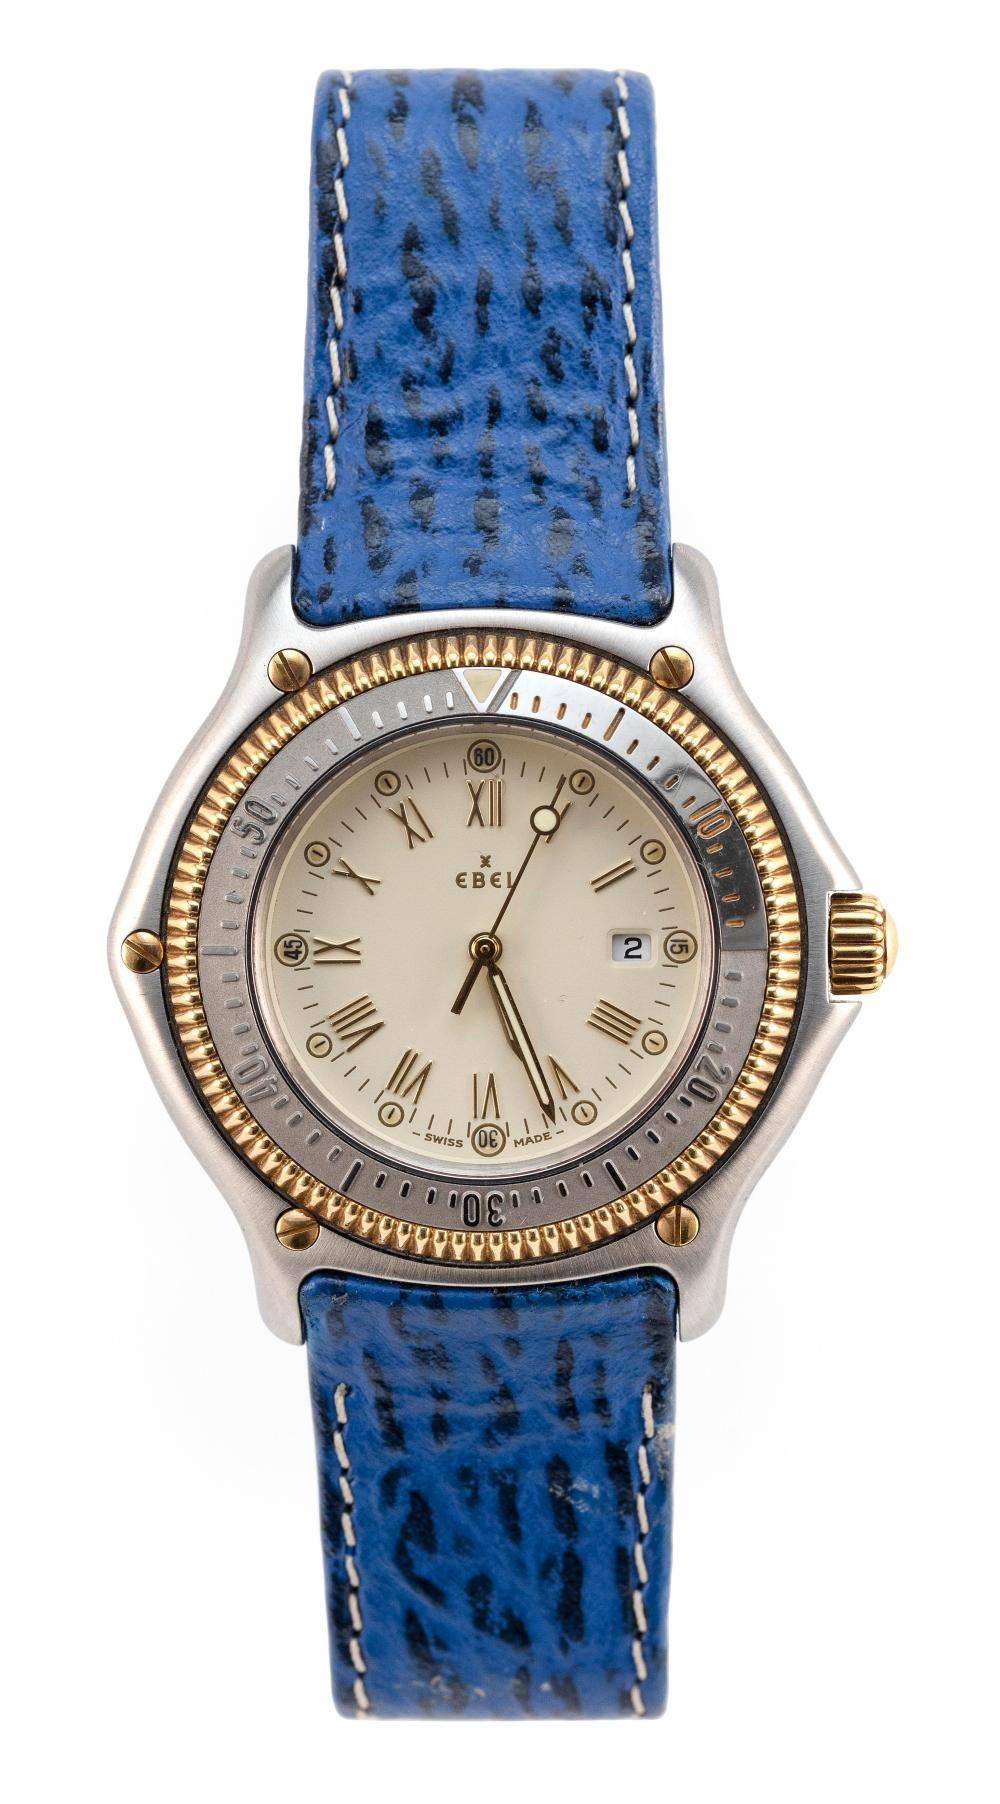 EBEL STAINLESS STEEL AND 18KT GOLD WATCH